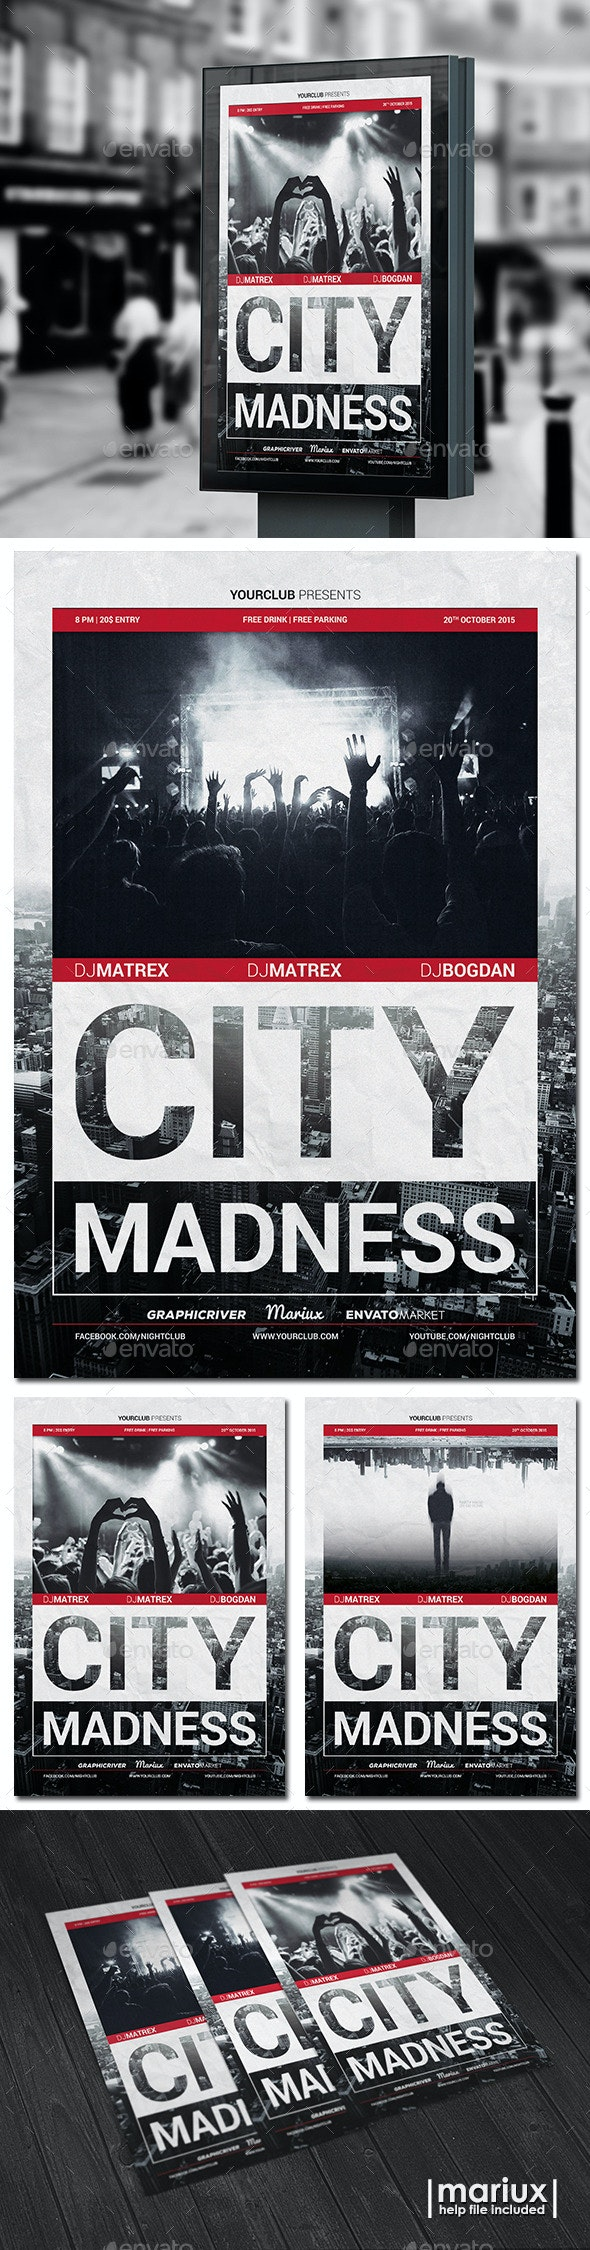 City Madness Party Flyer - Clubs & Parties Events